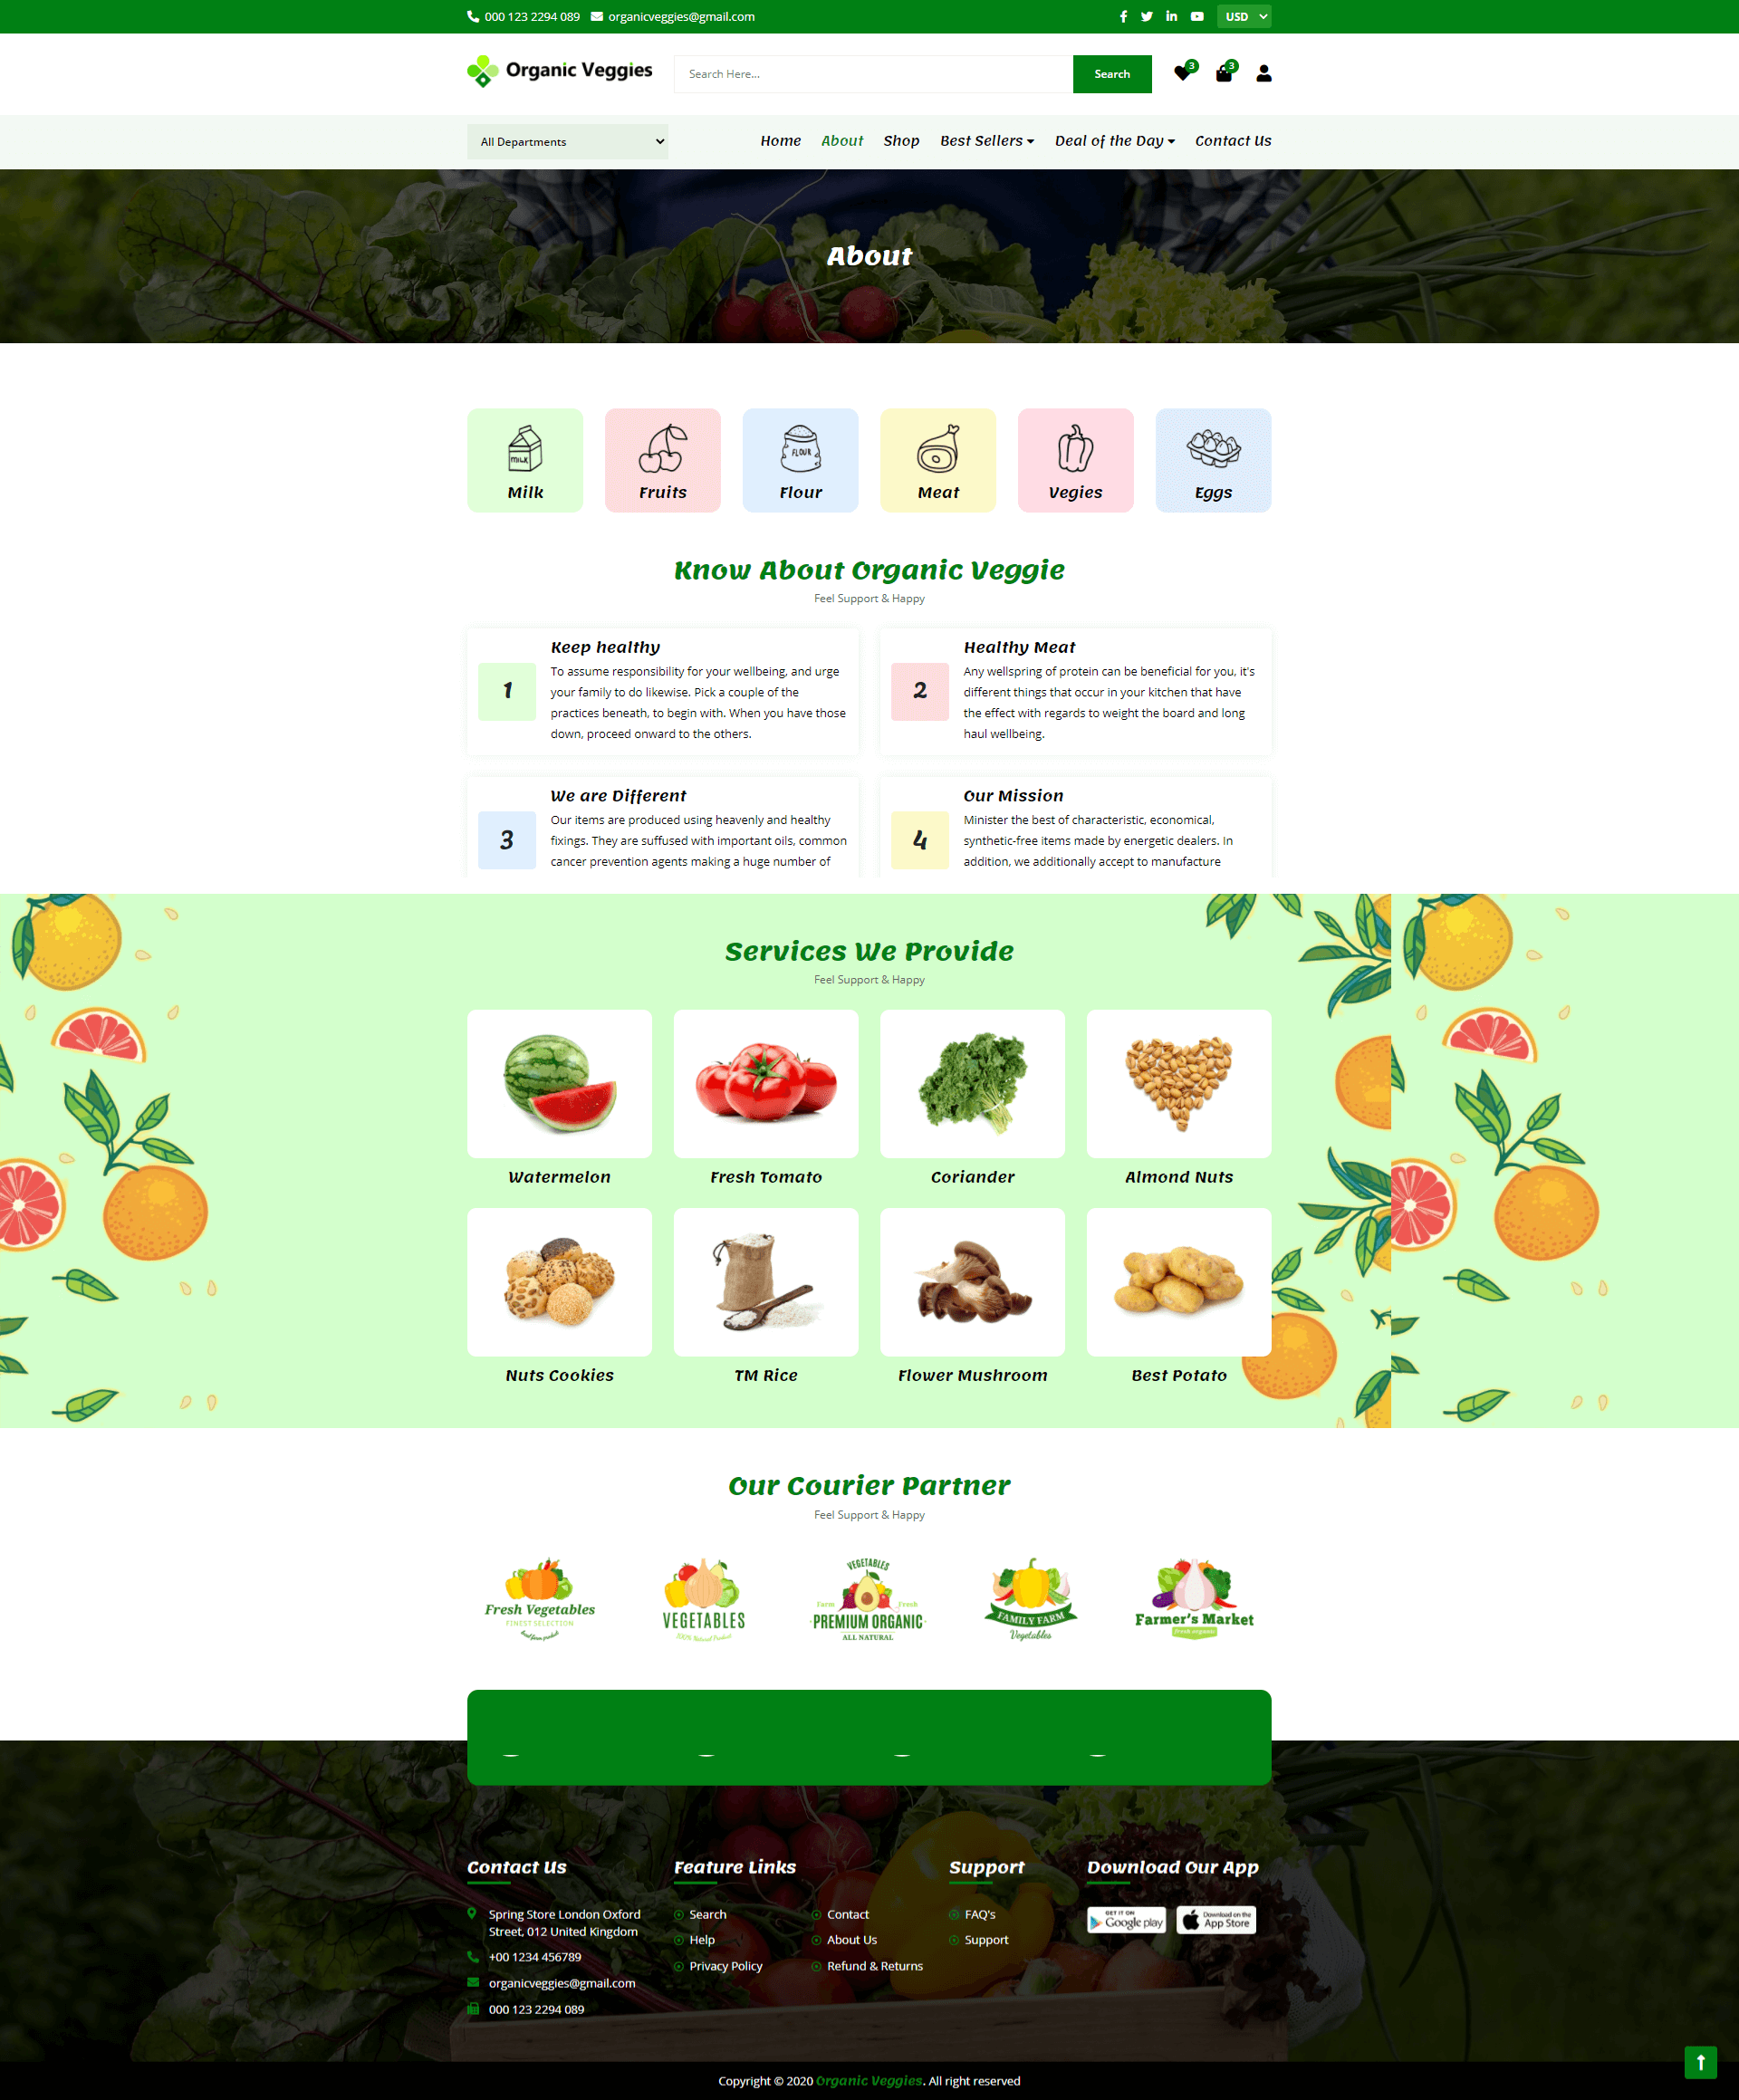 Grocery Store Web Screenshot first Image